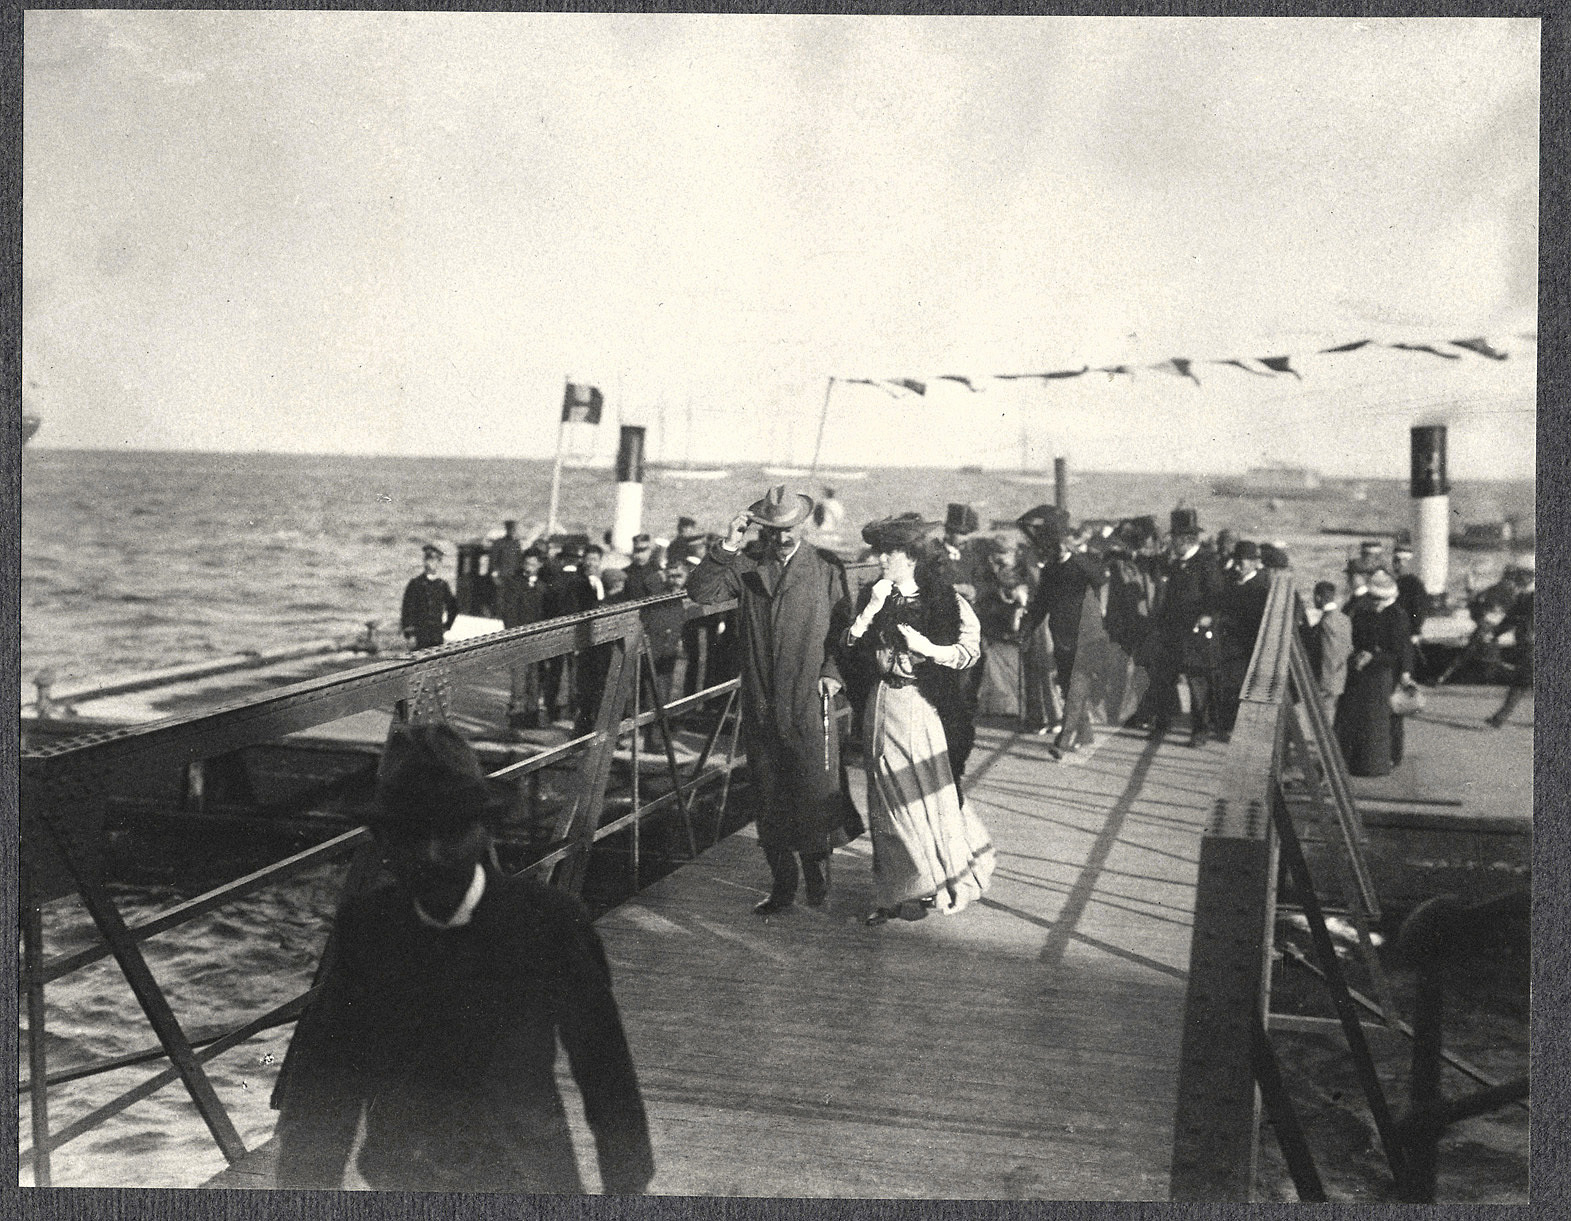 Alice Roosevelt arrives at Incheon in Korea, accompanied by American ambassador to Korea, Edwin V. Morgan